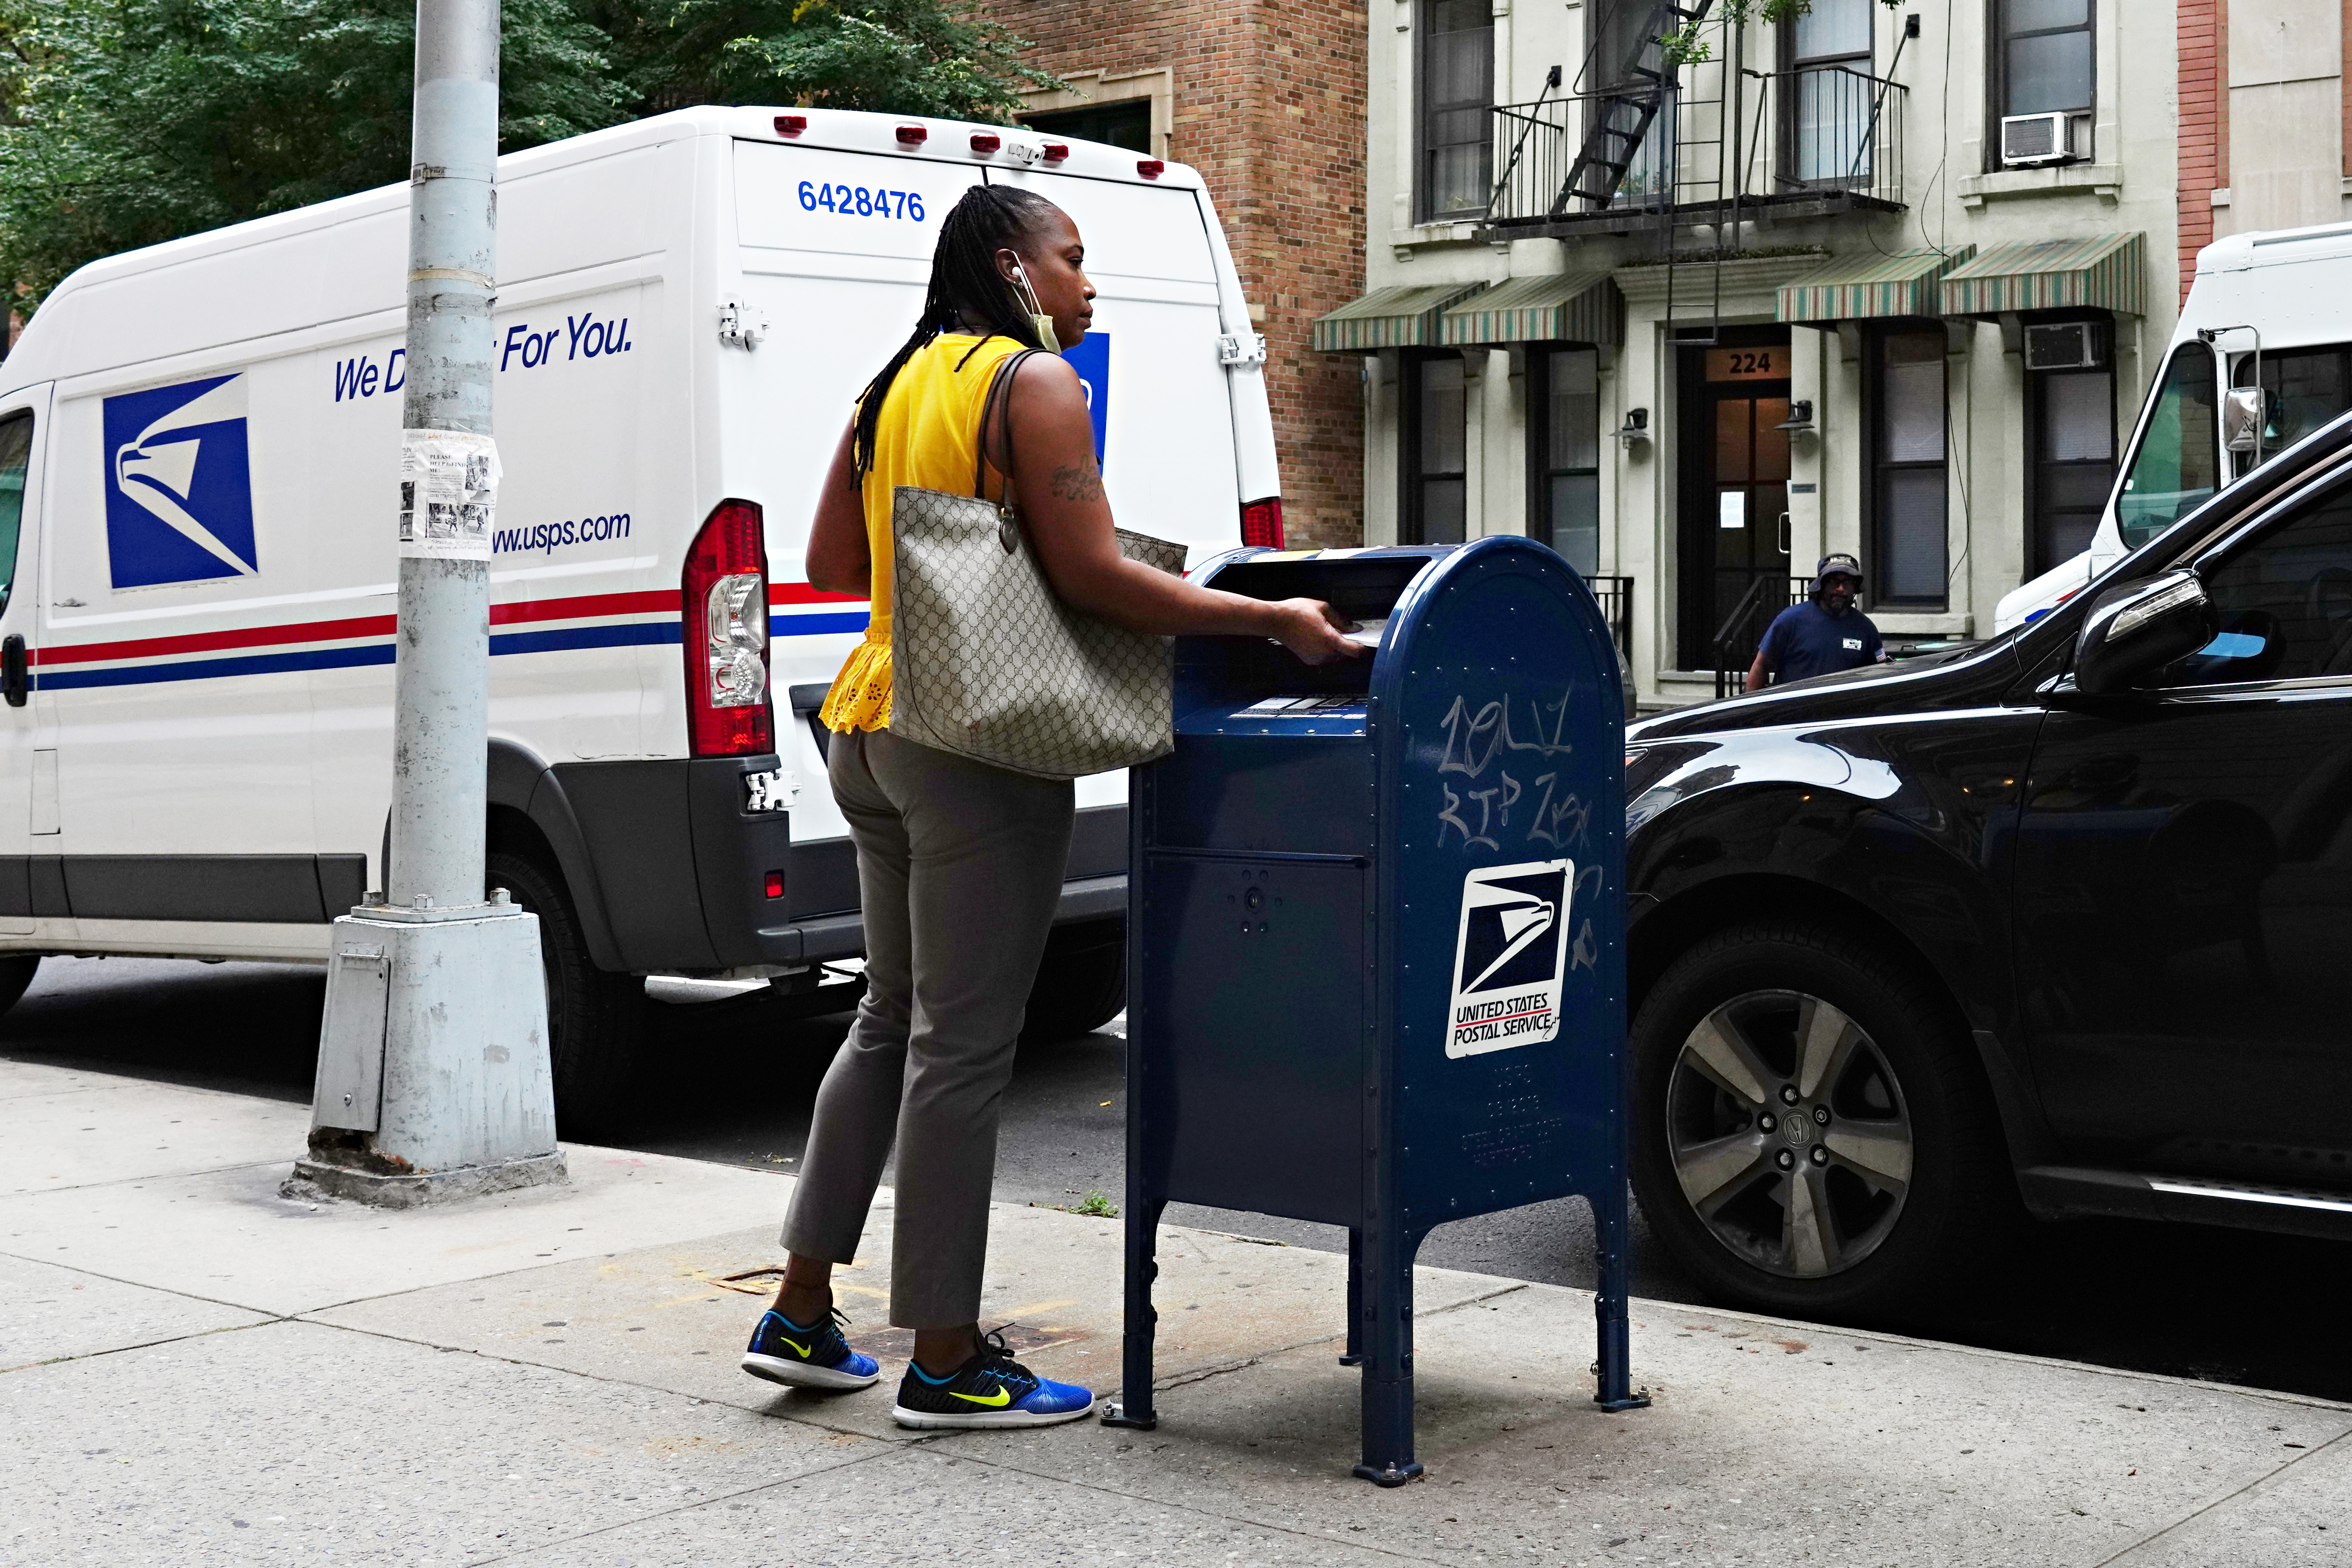 A woman wearing a protective mask at her chin uses a USPS mailbox as the city continues Phase 4 of re-opening following restrictions imposed to slow the spread of coronavirus on August 17, 2020 in New York City. (Cindy Ord/Getty Images)